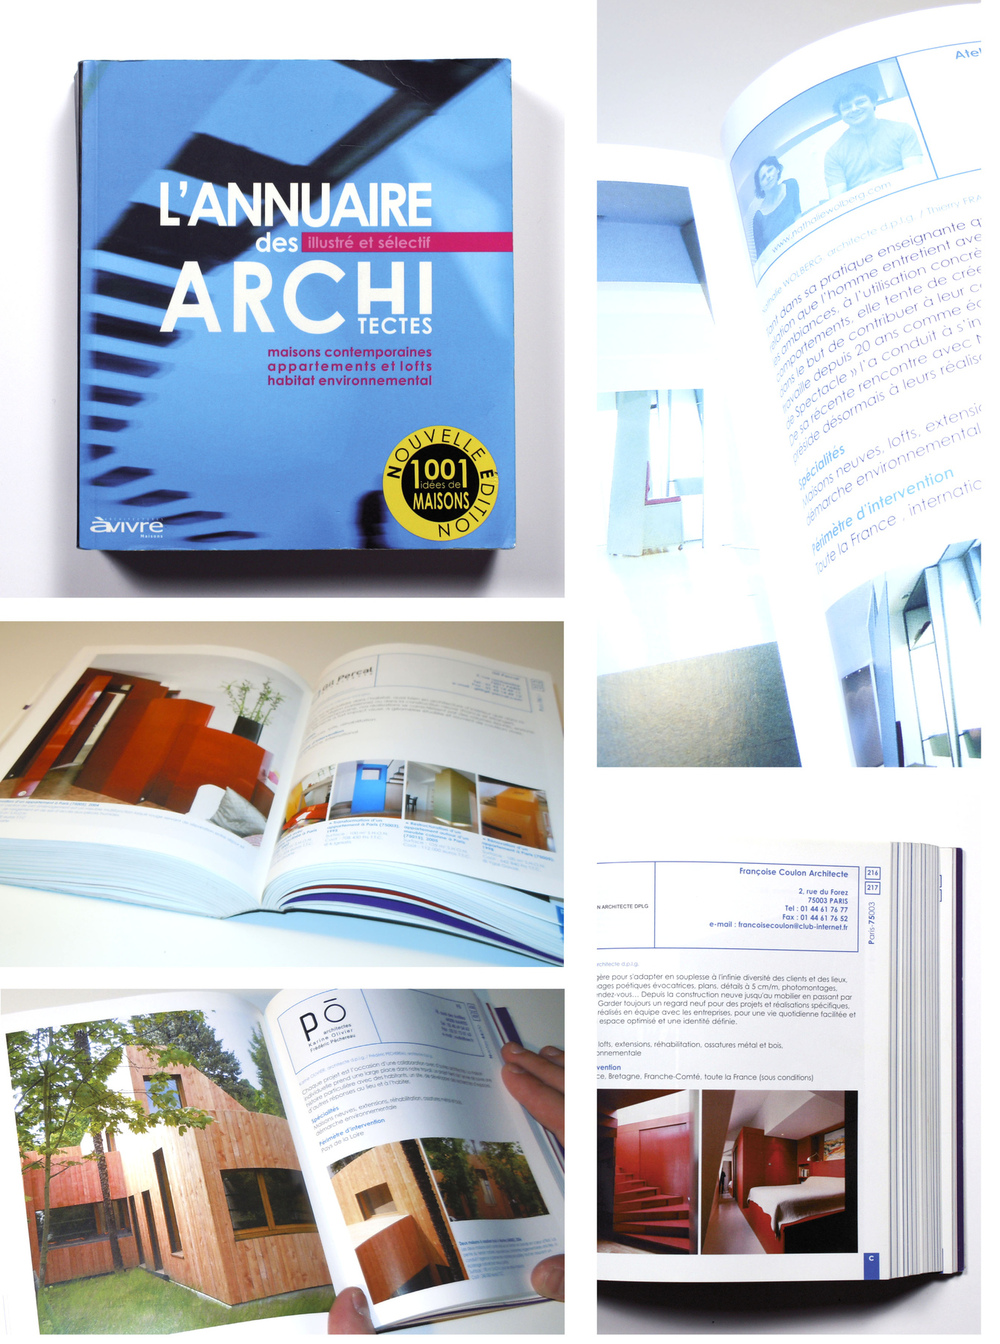 samantha paul - Lannuaire des architectes